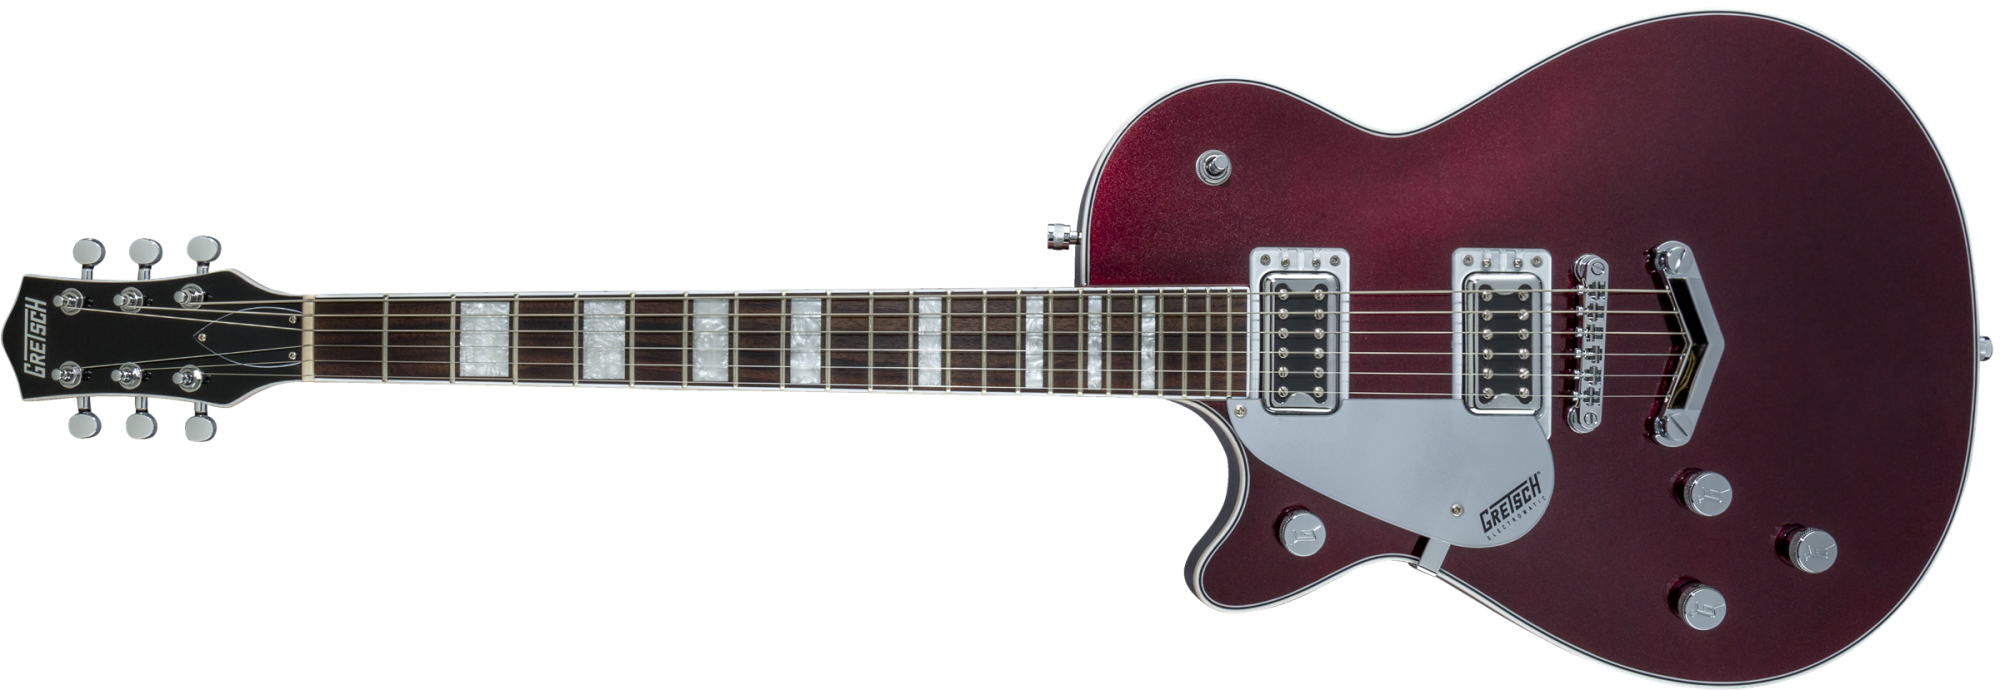 Gretsch G5220LH Left-handed Electromatic Jet BT w/V Stoptail